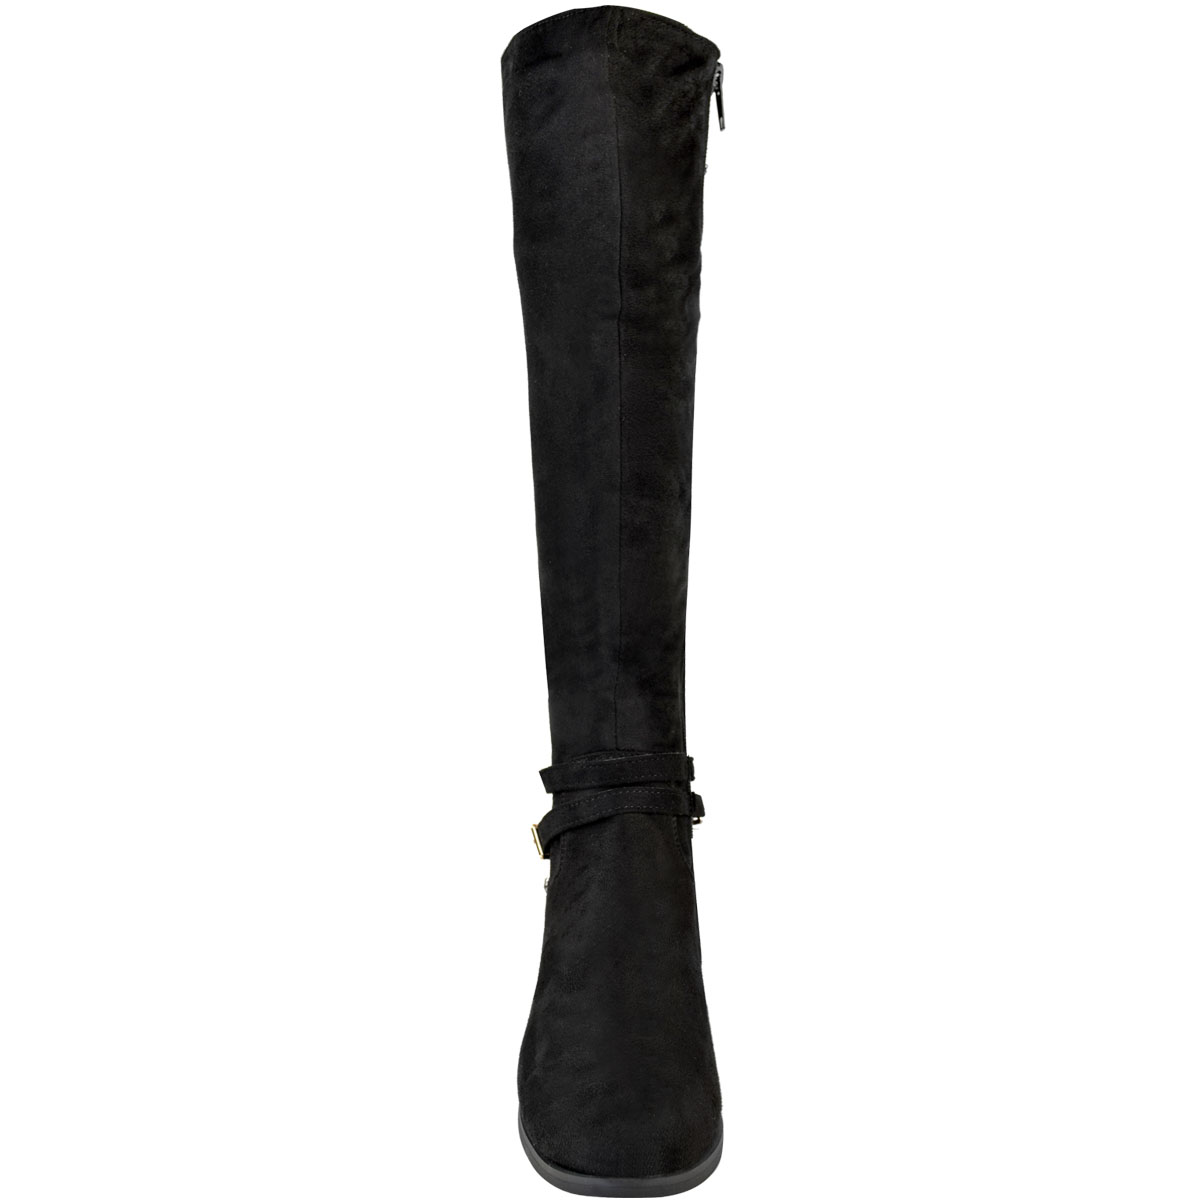 Womens-Ladies-Flat-Stretch-Knee-High-Riding-Boots-Grip-Sole-Winter-Shoes-Size-UK Indexbild 12